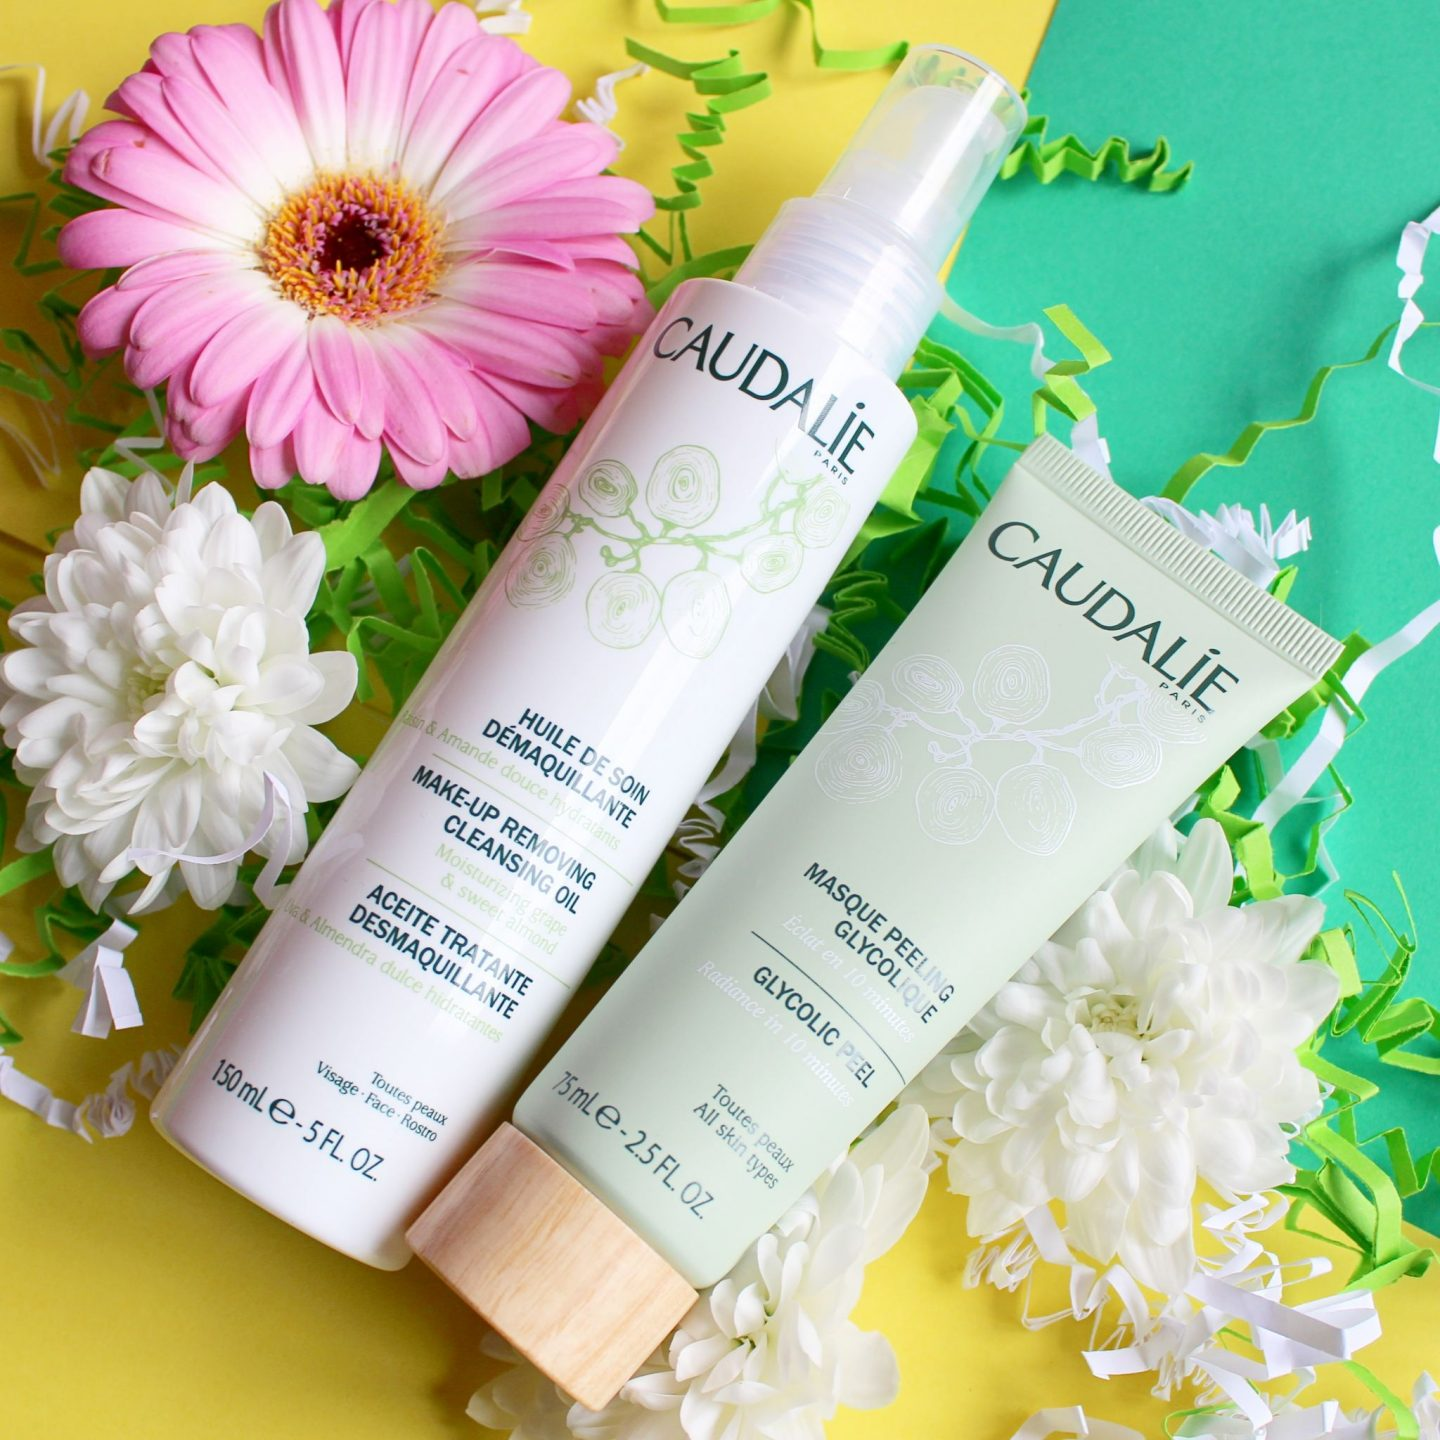 Mixing up Your Cleansing Routine with Caudalie | Make-up Removing Cleansing Oil